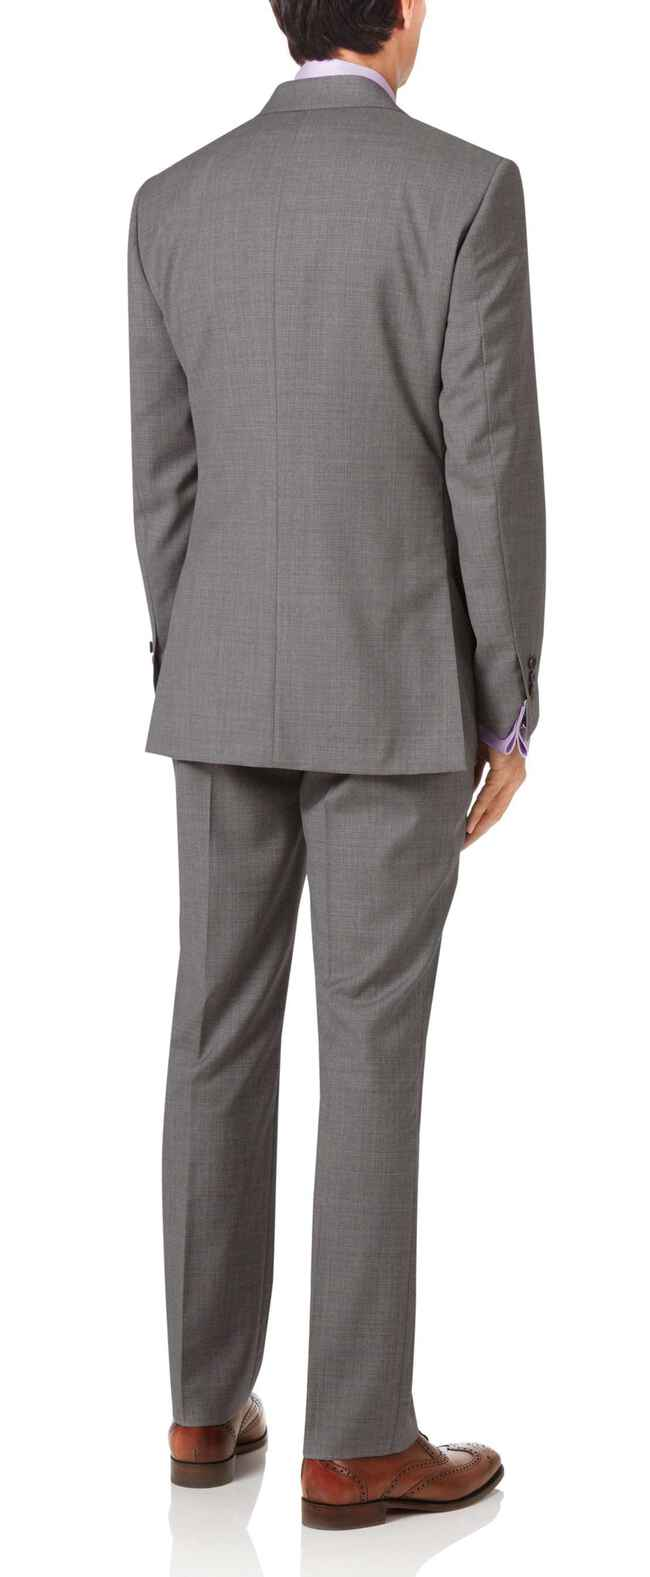 Silver slim fit Italian cross hatch weave suit